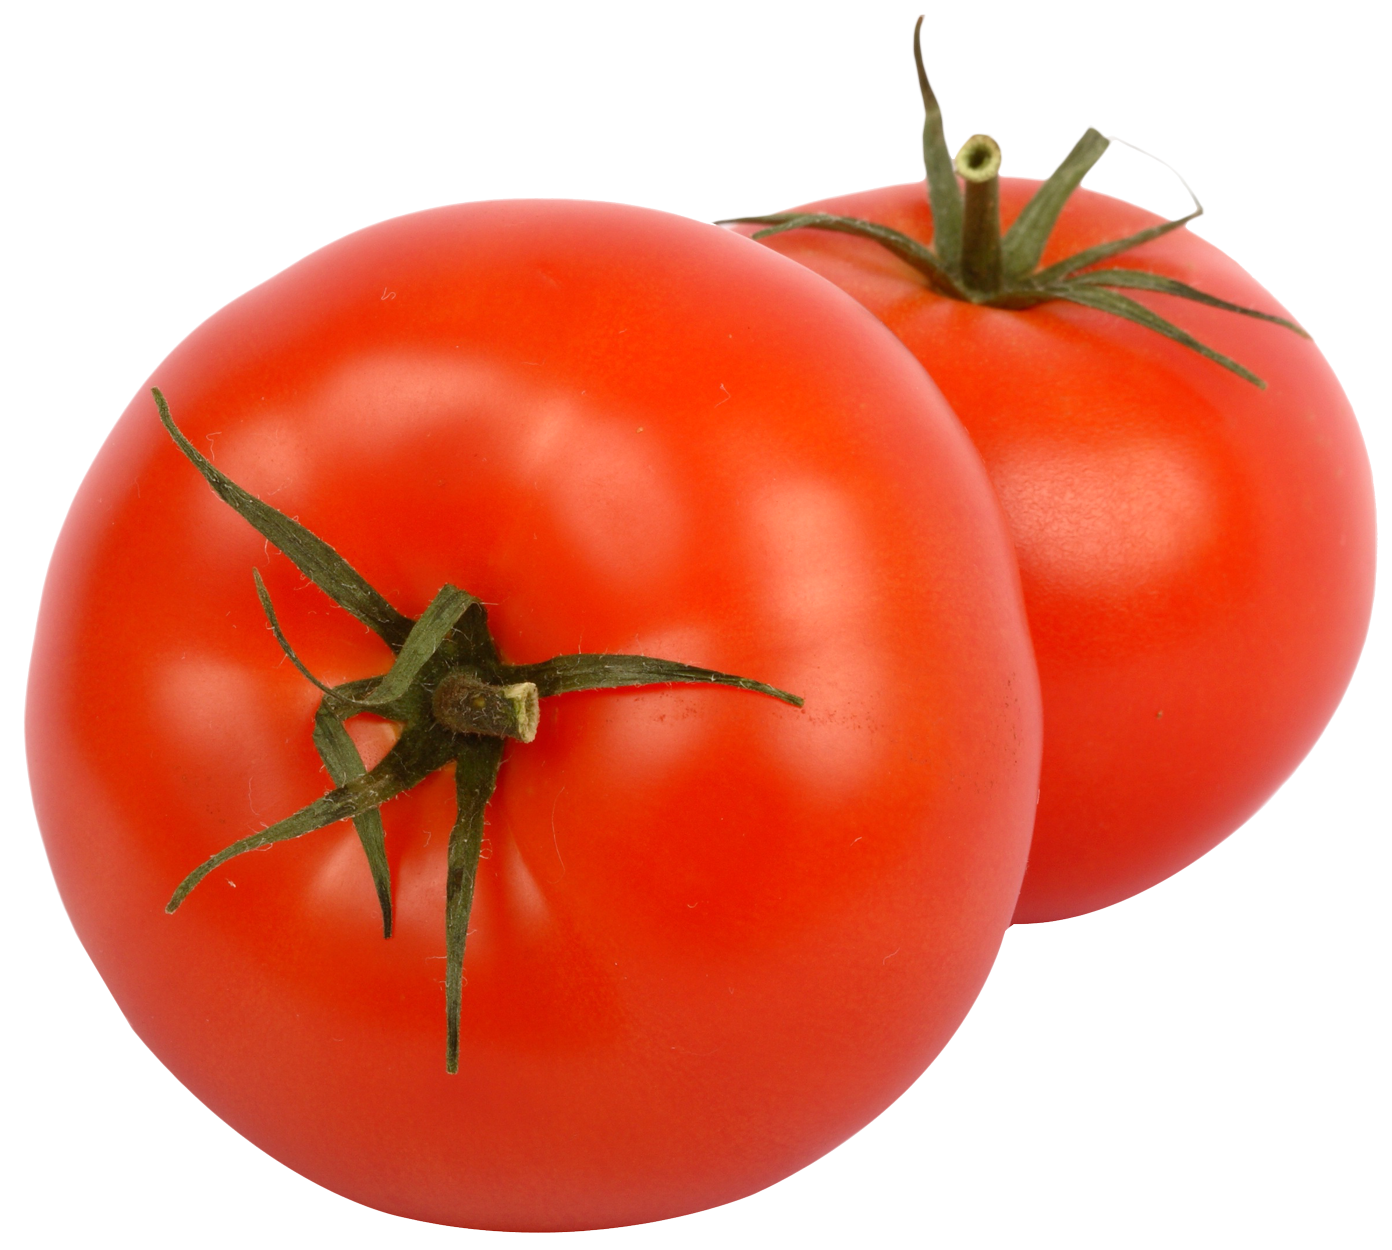 Tomato PNG - 4807